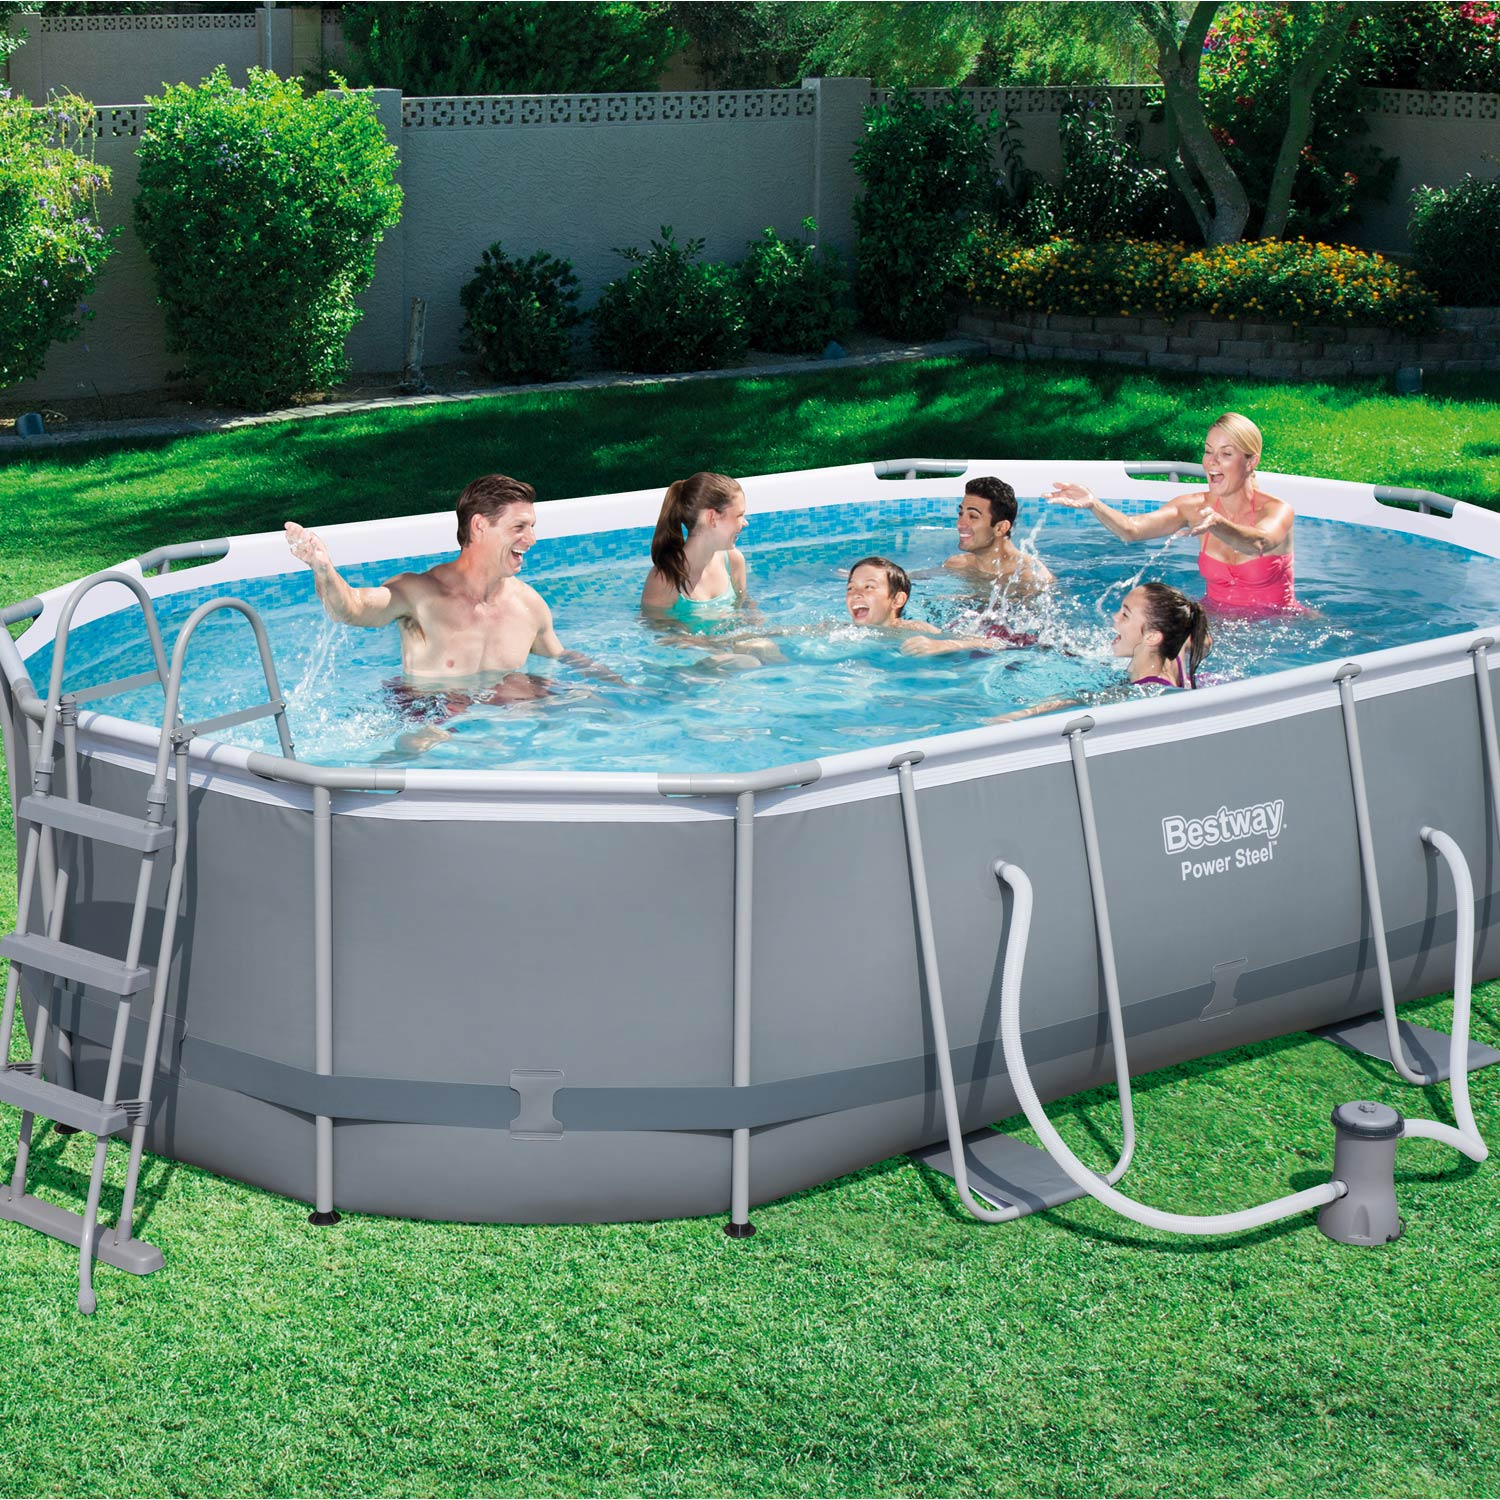 Piscine hors sol autoportante tubulaire bestway l x for Piscine autoportee intex leclerc